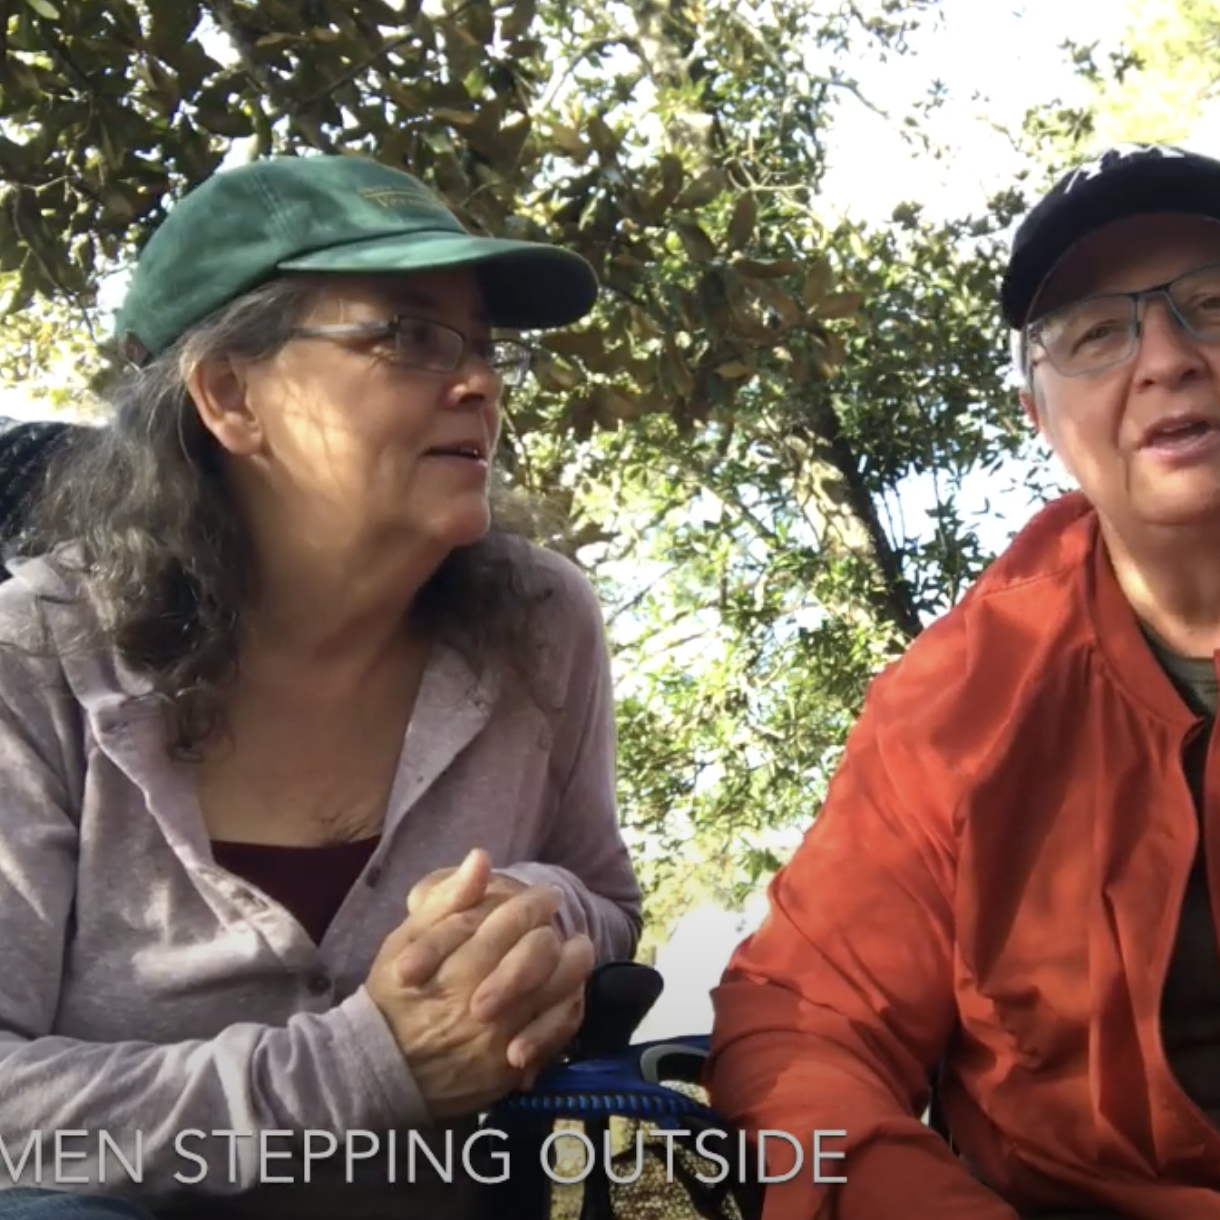 Bridgette Mongeon and Carol talk about women stepping outside